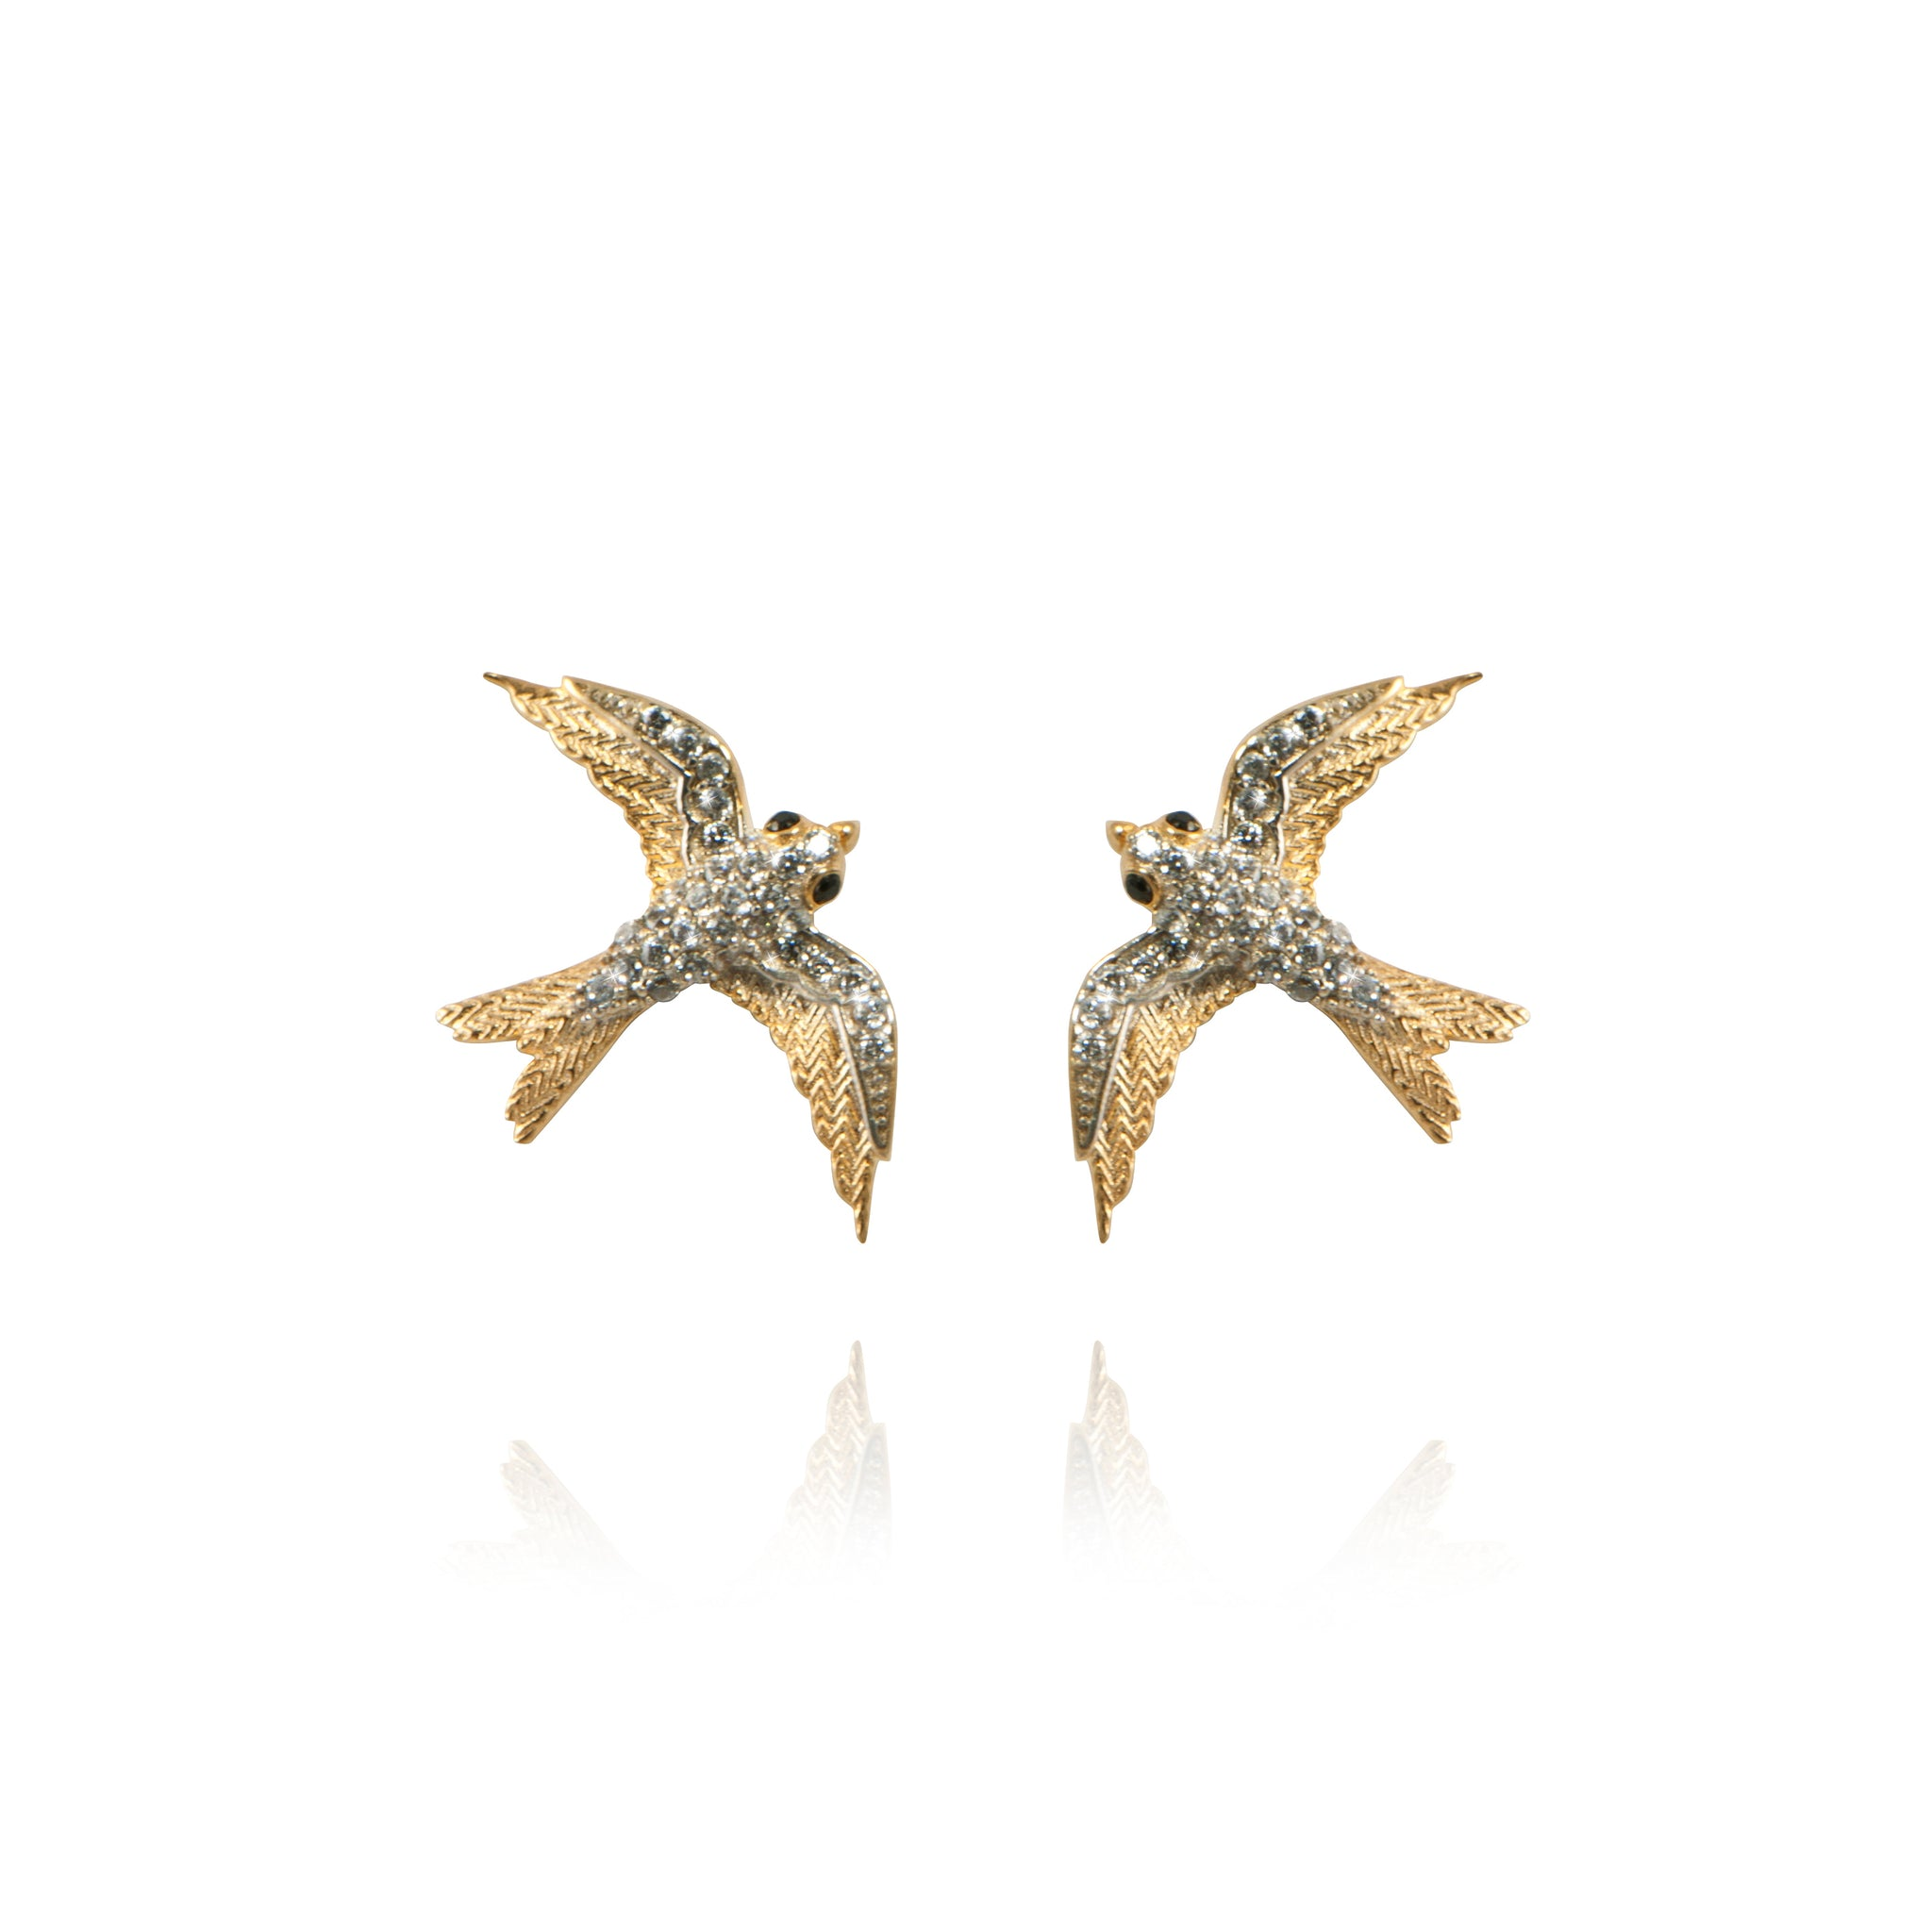 APPLES & FIGS - SMALL BIRD ALLEGORY STUDS